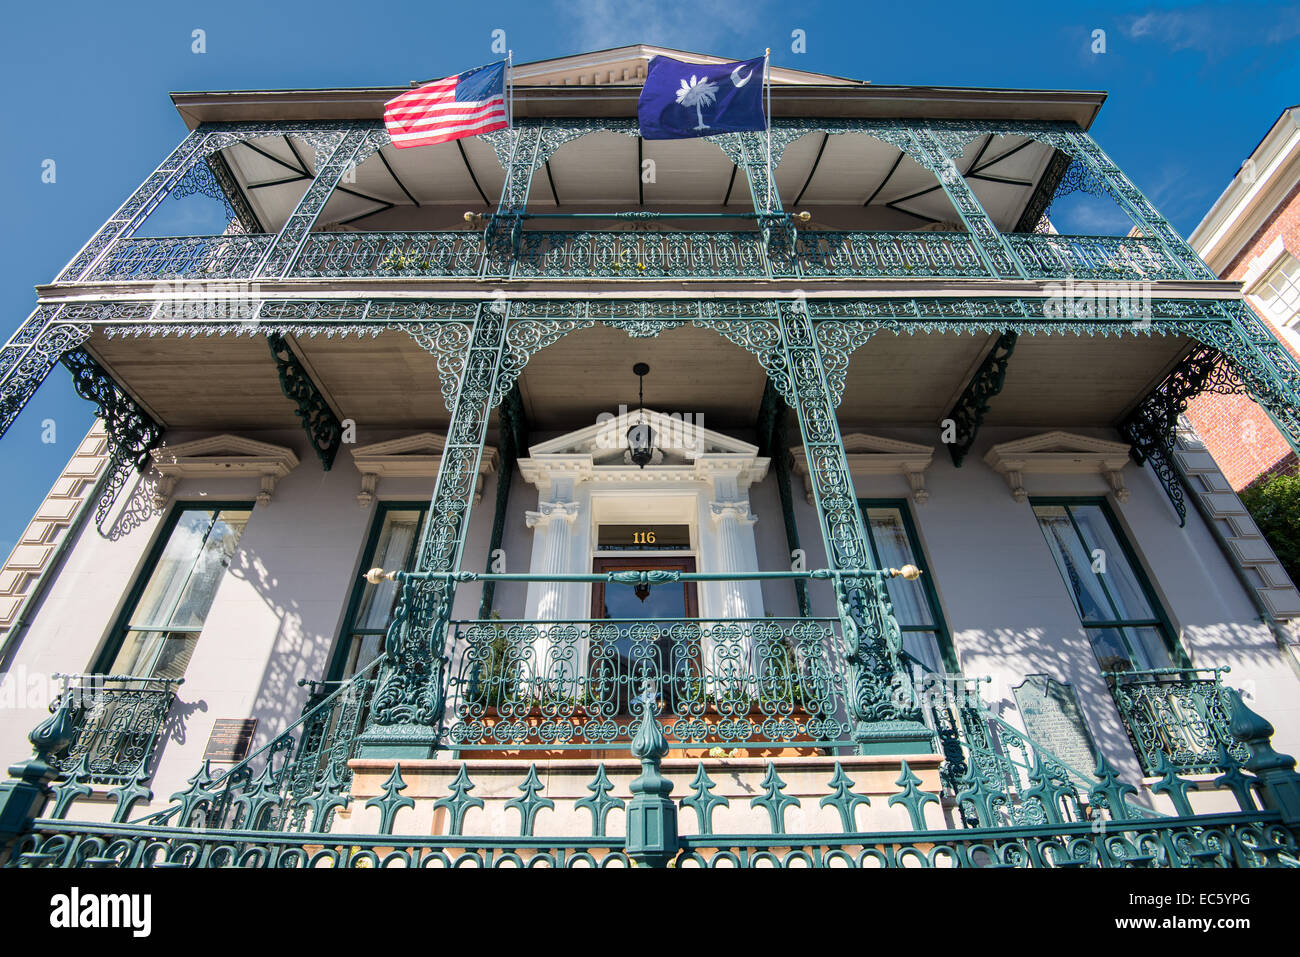 John Rutledge House - an example of traditional residential architecture in Charleston, SC - Stock Image